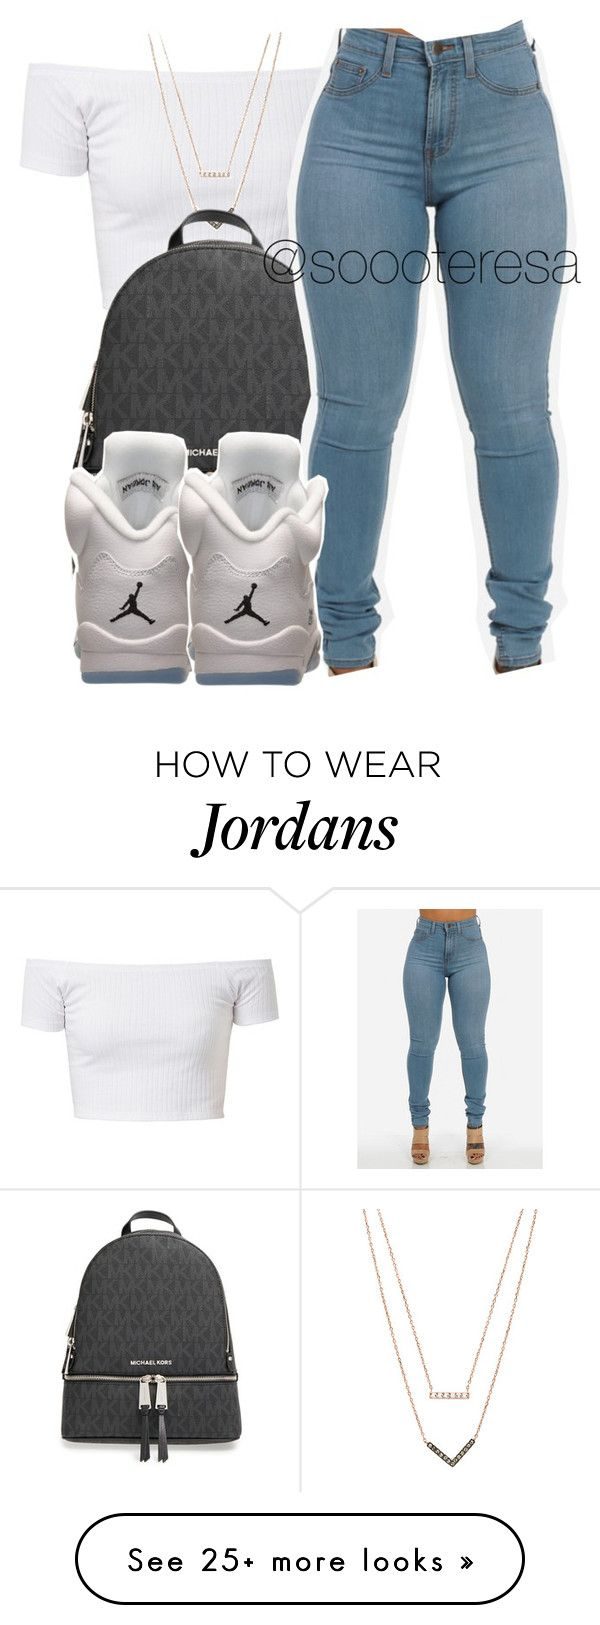 """Untitled #121"" by soooteresa on Polyvore featuring Michael Kors, MICHAEL Michael Kors and Retrò"